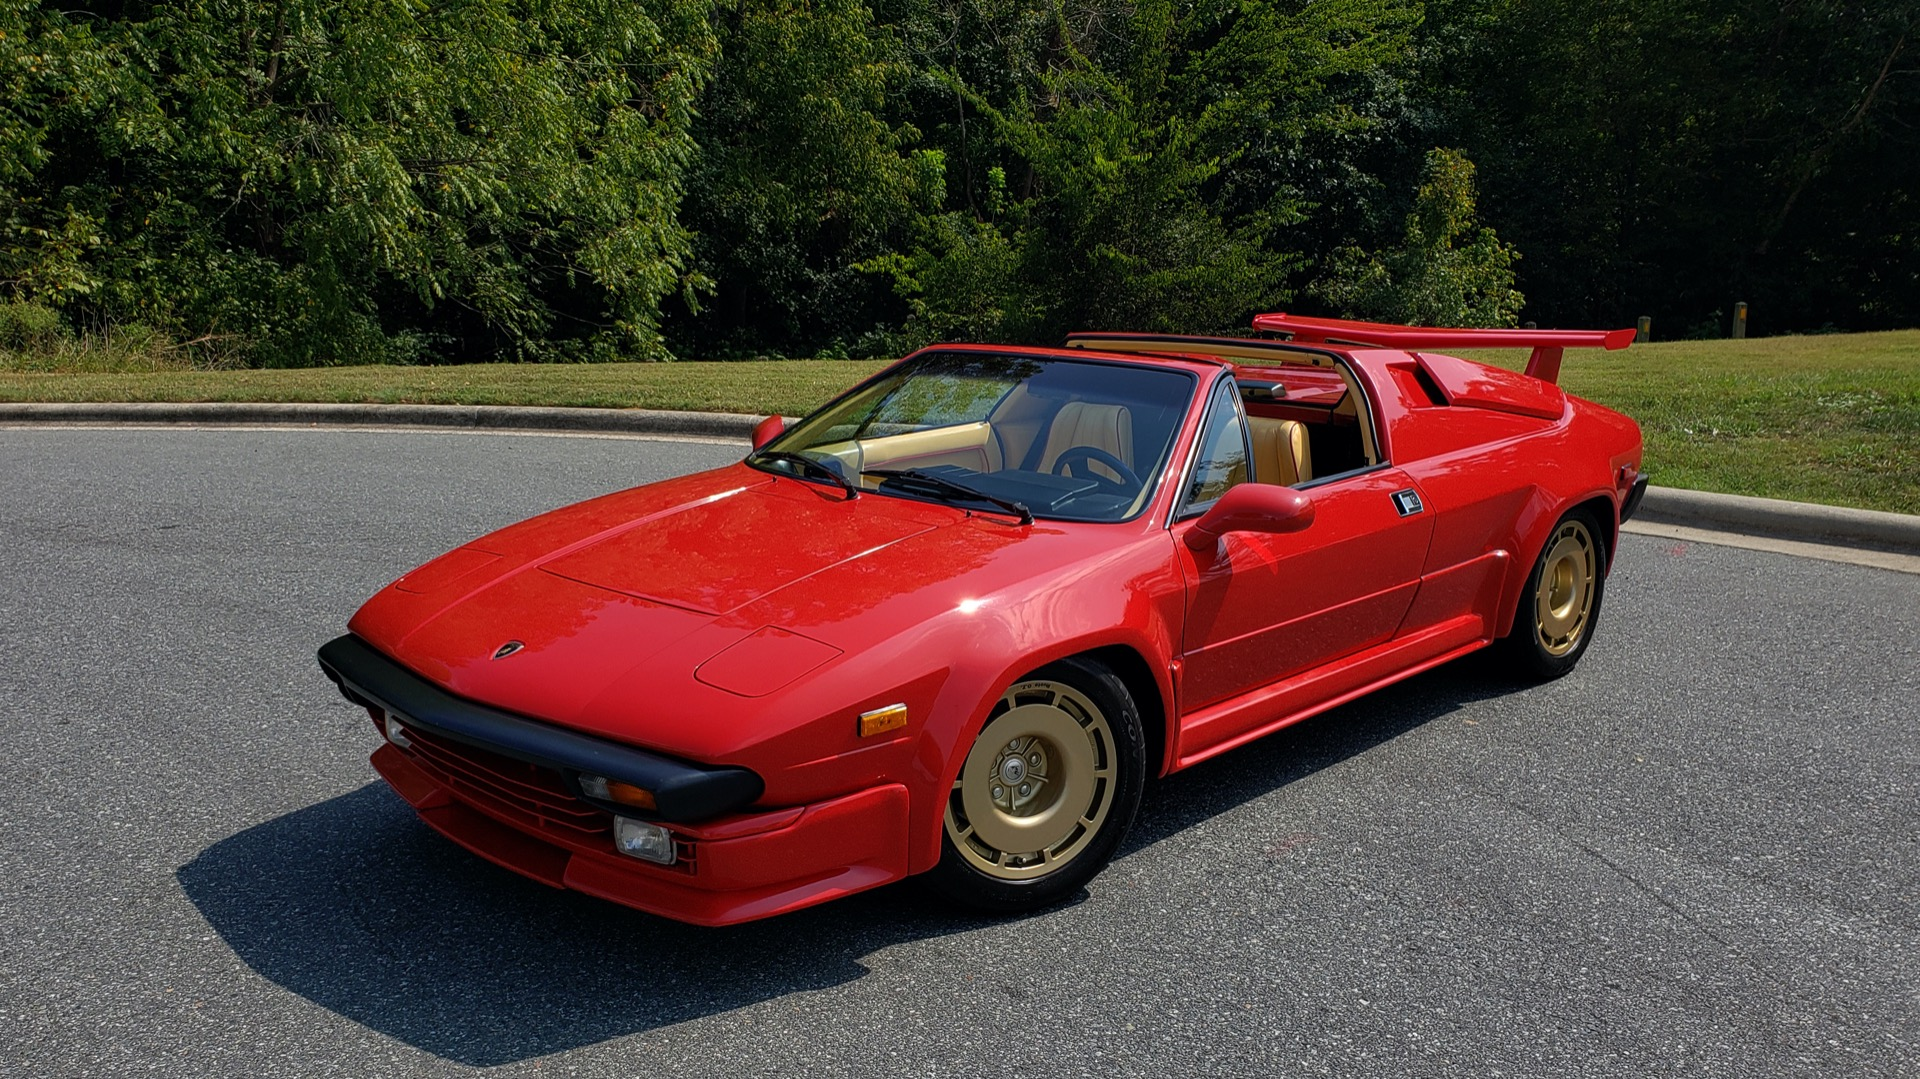 Used 1988 Lamborghini Jalpa 3.5 / 5-Speed Man / Low Miles / Excellent Condition for sale $108,995 at Formula Imports in Charlotte NC 28227 21